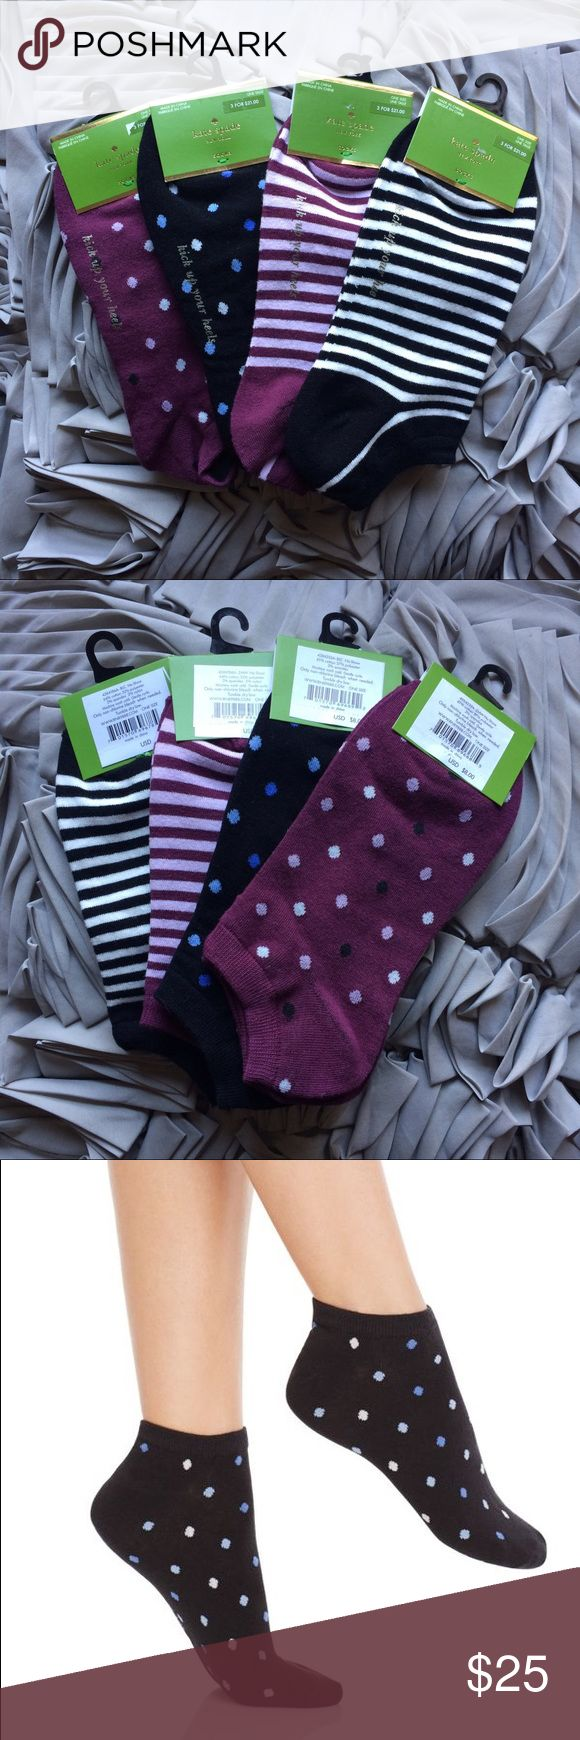 Kate Spade Dot/Stripe Sock Bundle - 4 Pairs! Four pairs of Kate Spade no show socks. Sock 1 - Purple w/ light purple, black and white dots. Sock 2 - Black w/ blue and white dots. Sock 3 - Purple and white stripes. Sock 4 - Black and white stripes. Material: Cotton, polyester, spandex, nylon. One size fits most. Last pic to show fit. 🚫 trades. kate spade Accessories Hosiery & Socks